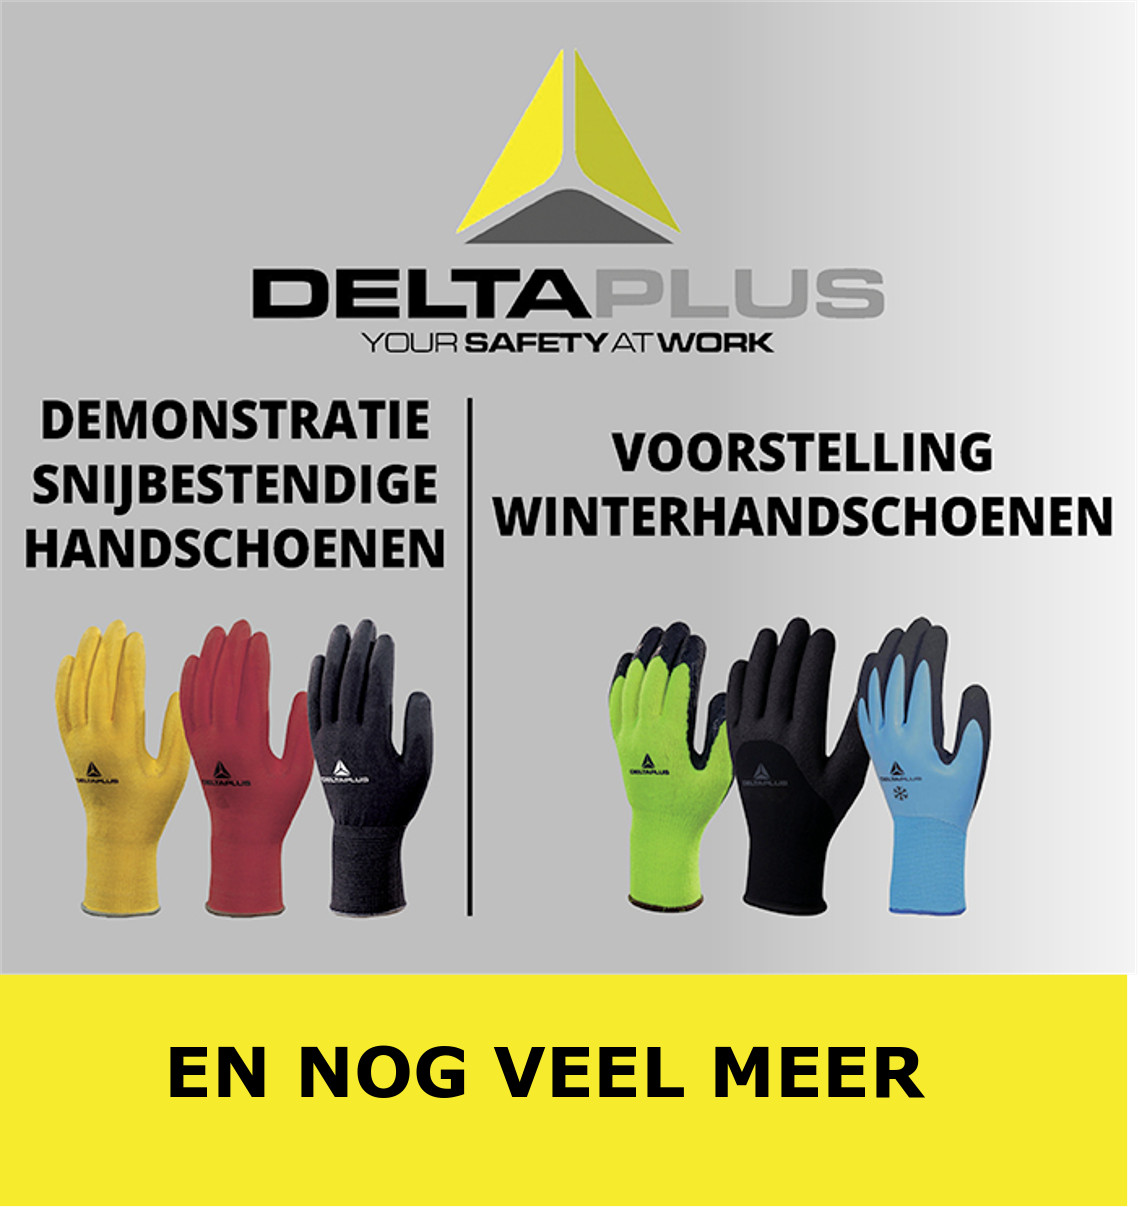 delta plus demonstratie